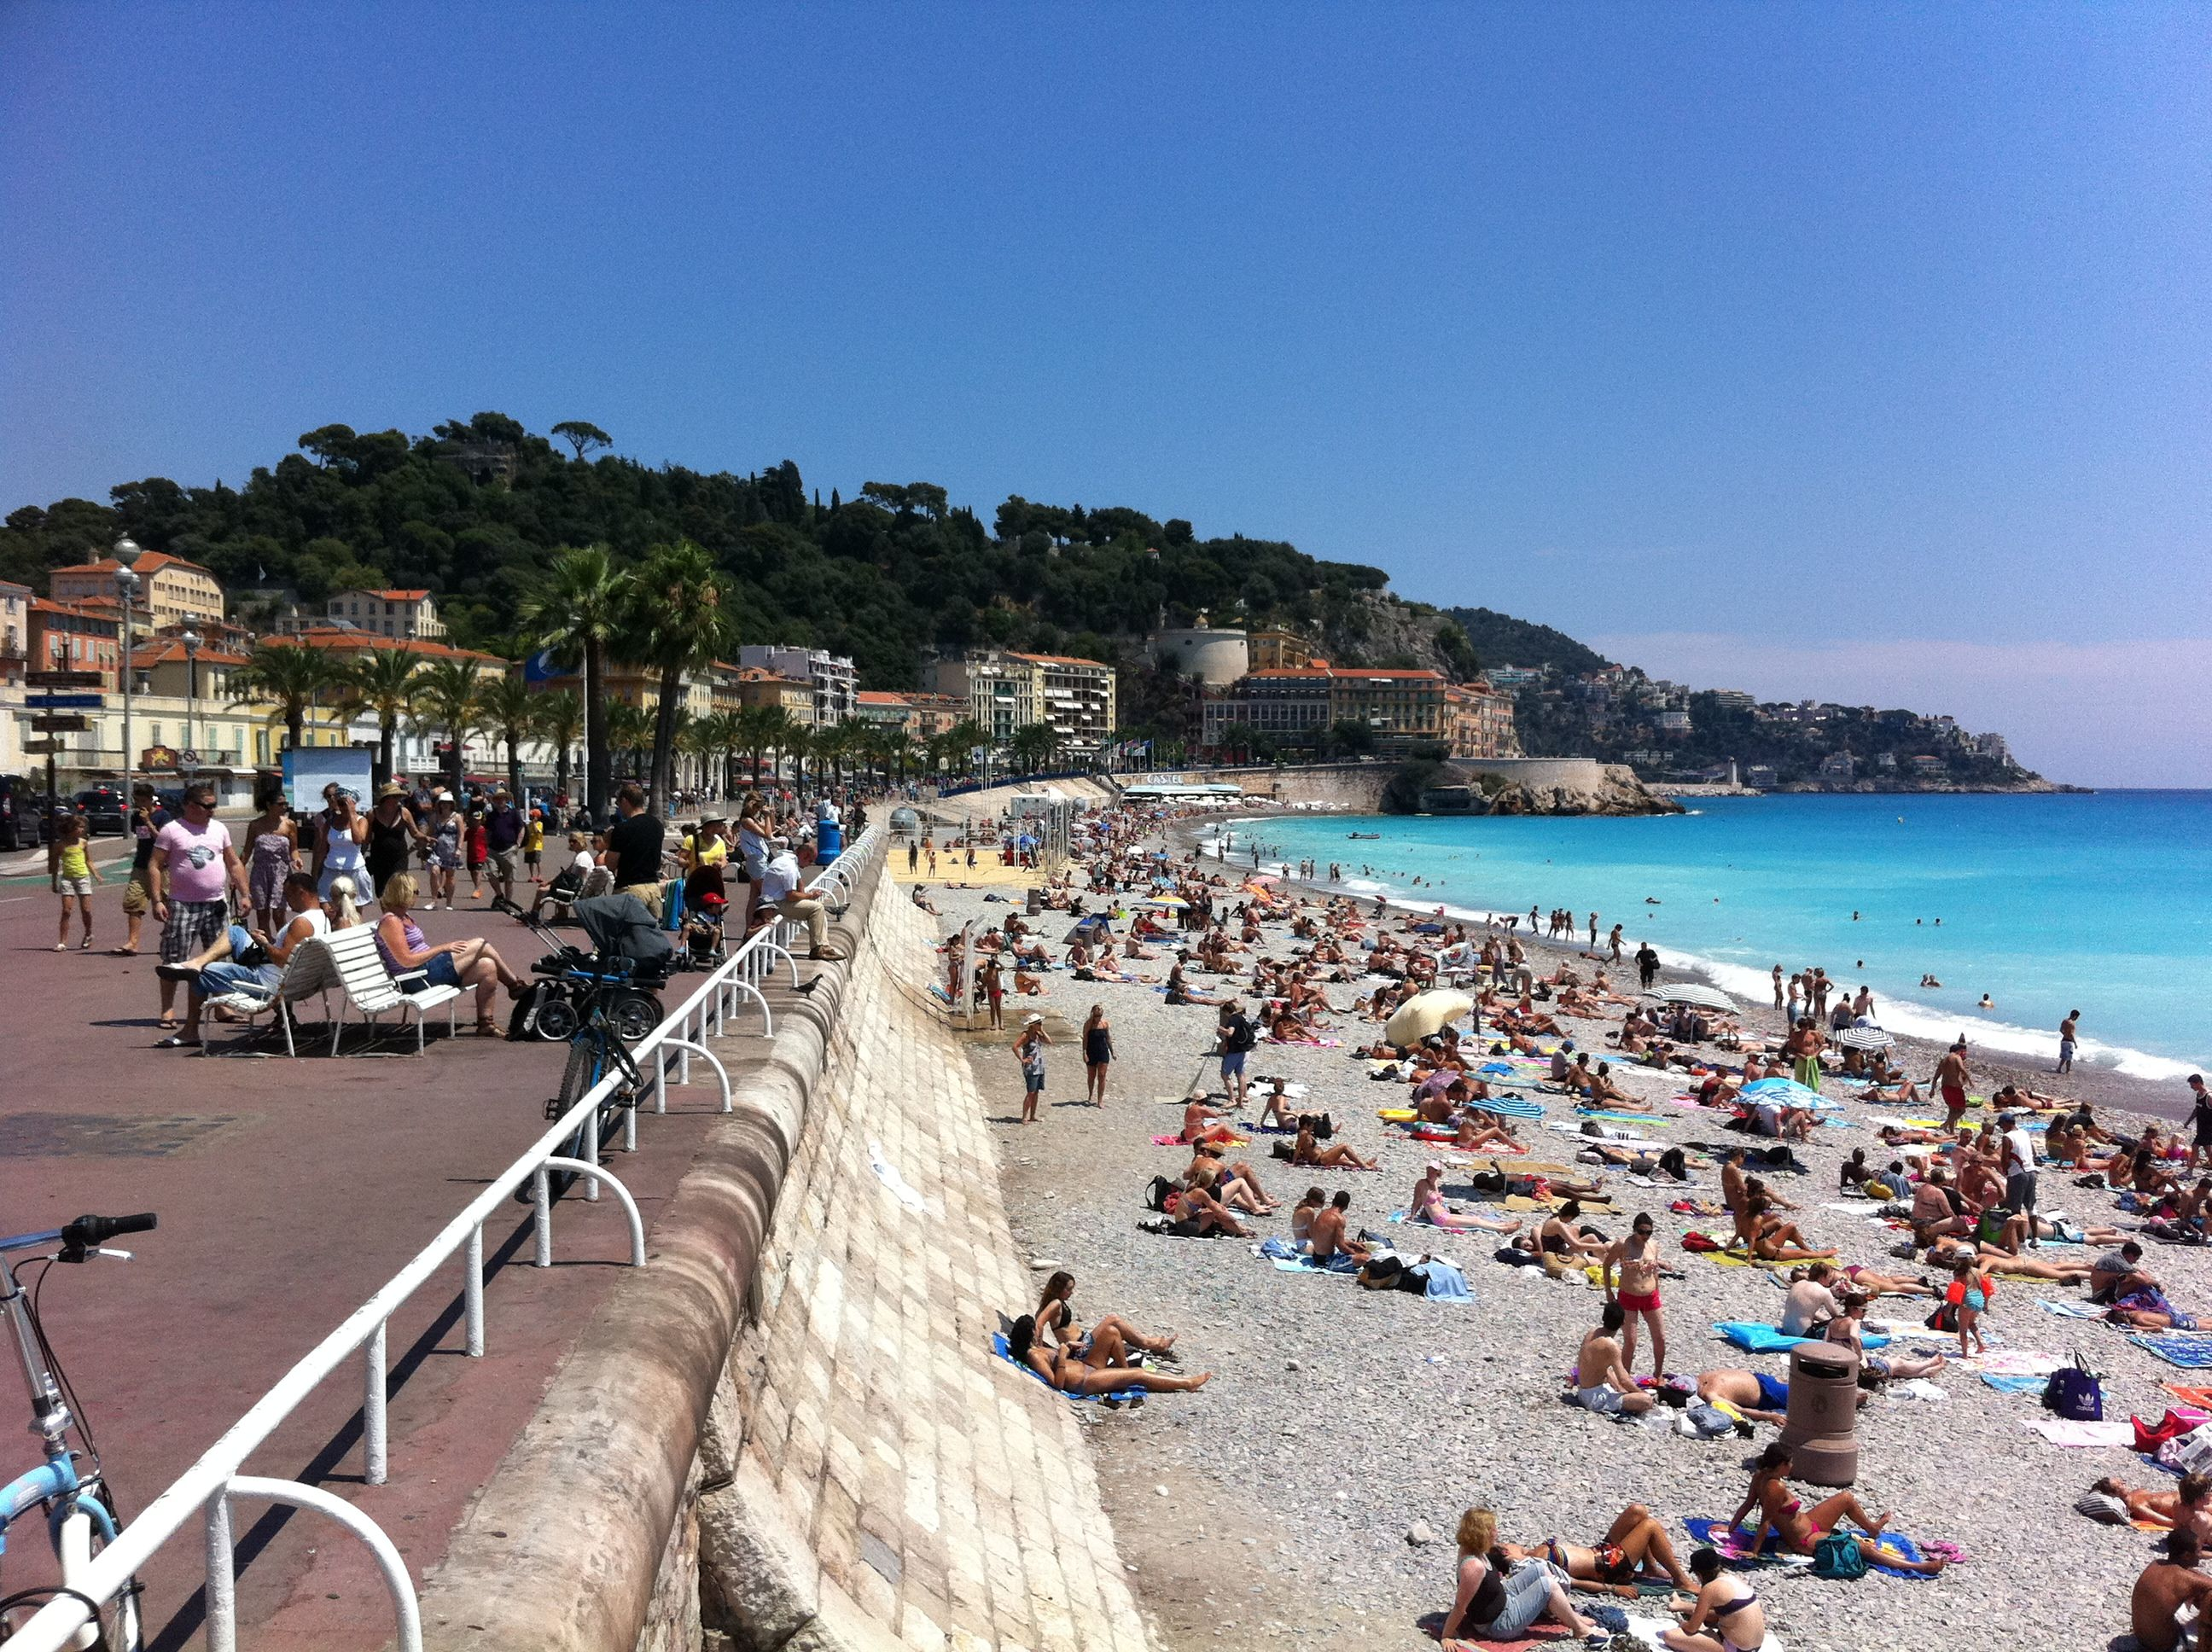 Nice France Beach Where We Spent A Lovely Afternoon Tanning And Swimming All Those Baguettes Though